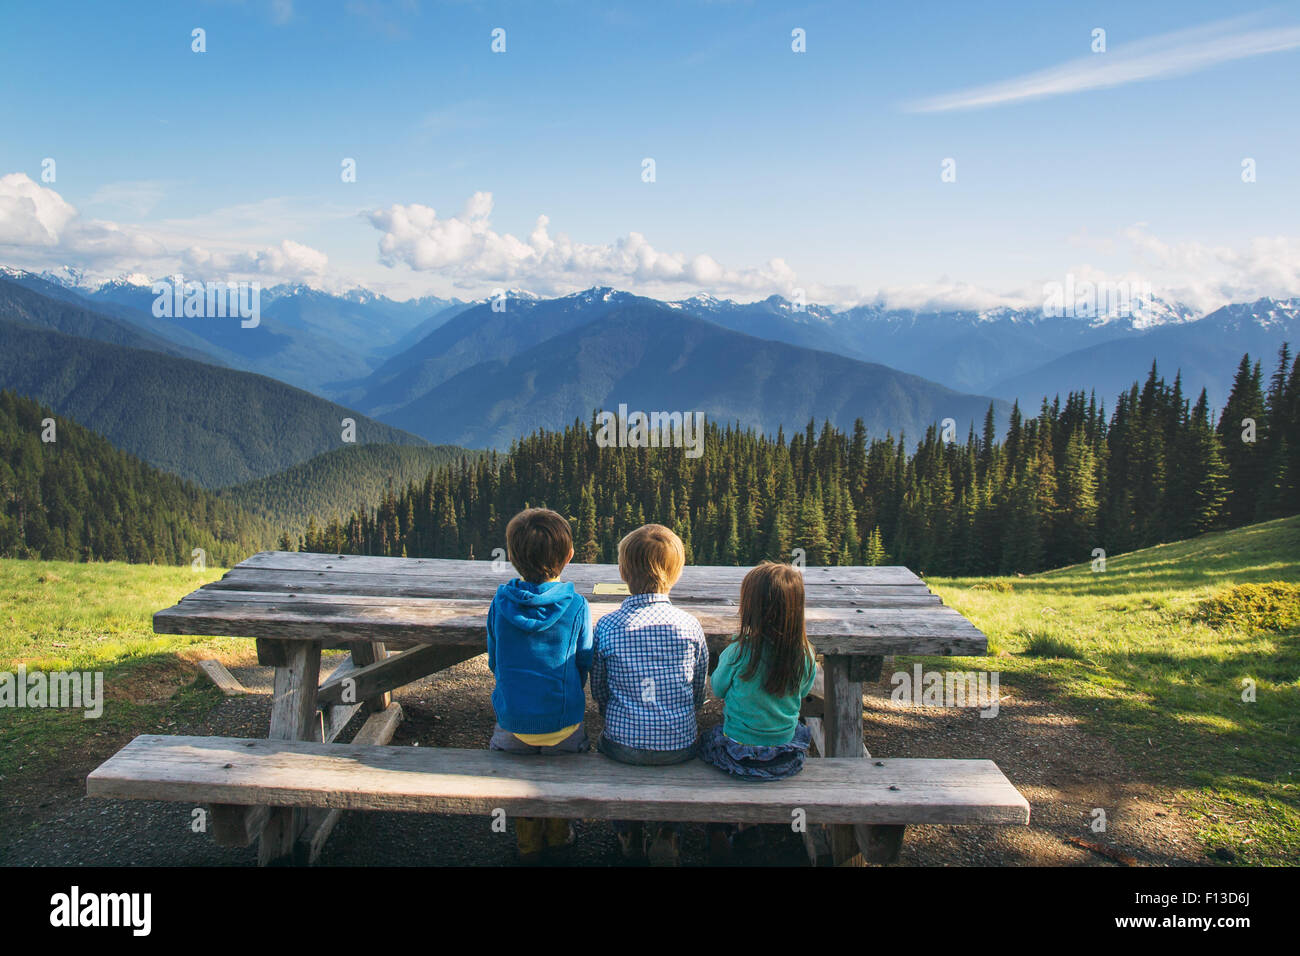 Rear view of three children sitting on a bench in countryside - Stock Image